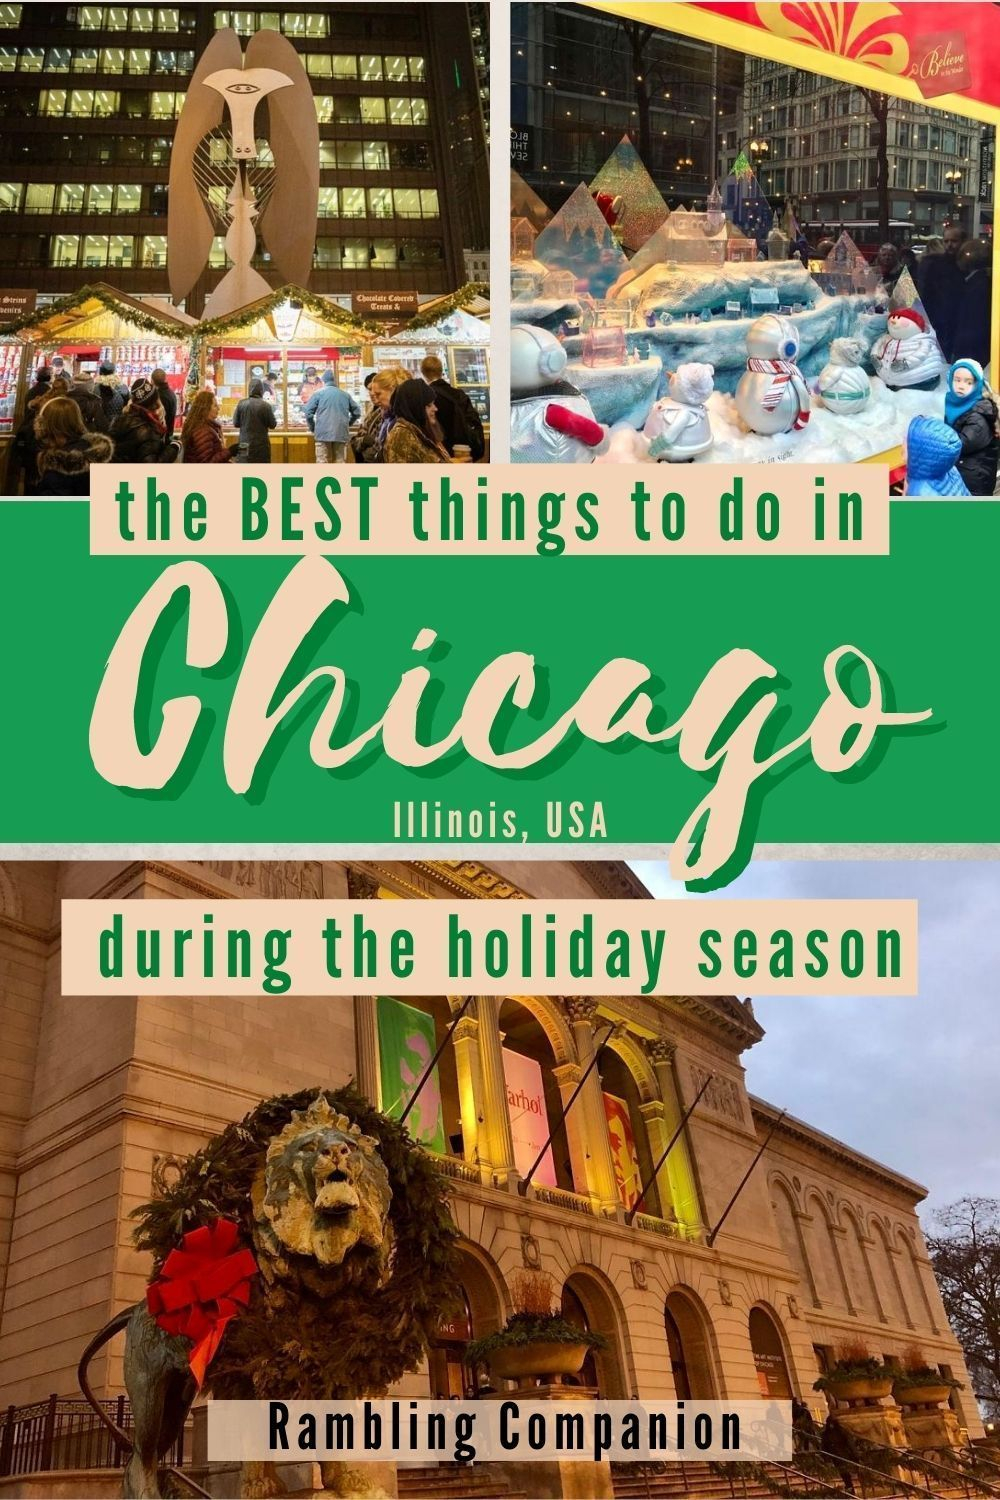 Planning on traveling to Chicago during the Holiday season? Chicago is full of Christmas cheer. This Midwest city has so many things to do to celebrate the holiday season from light displays to special holiday entertainment. #Chicago #Holidays #Winter